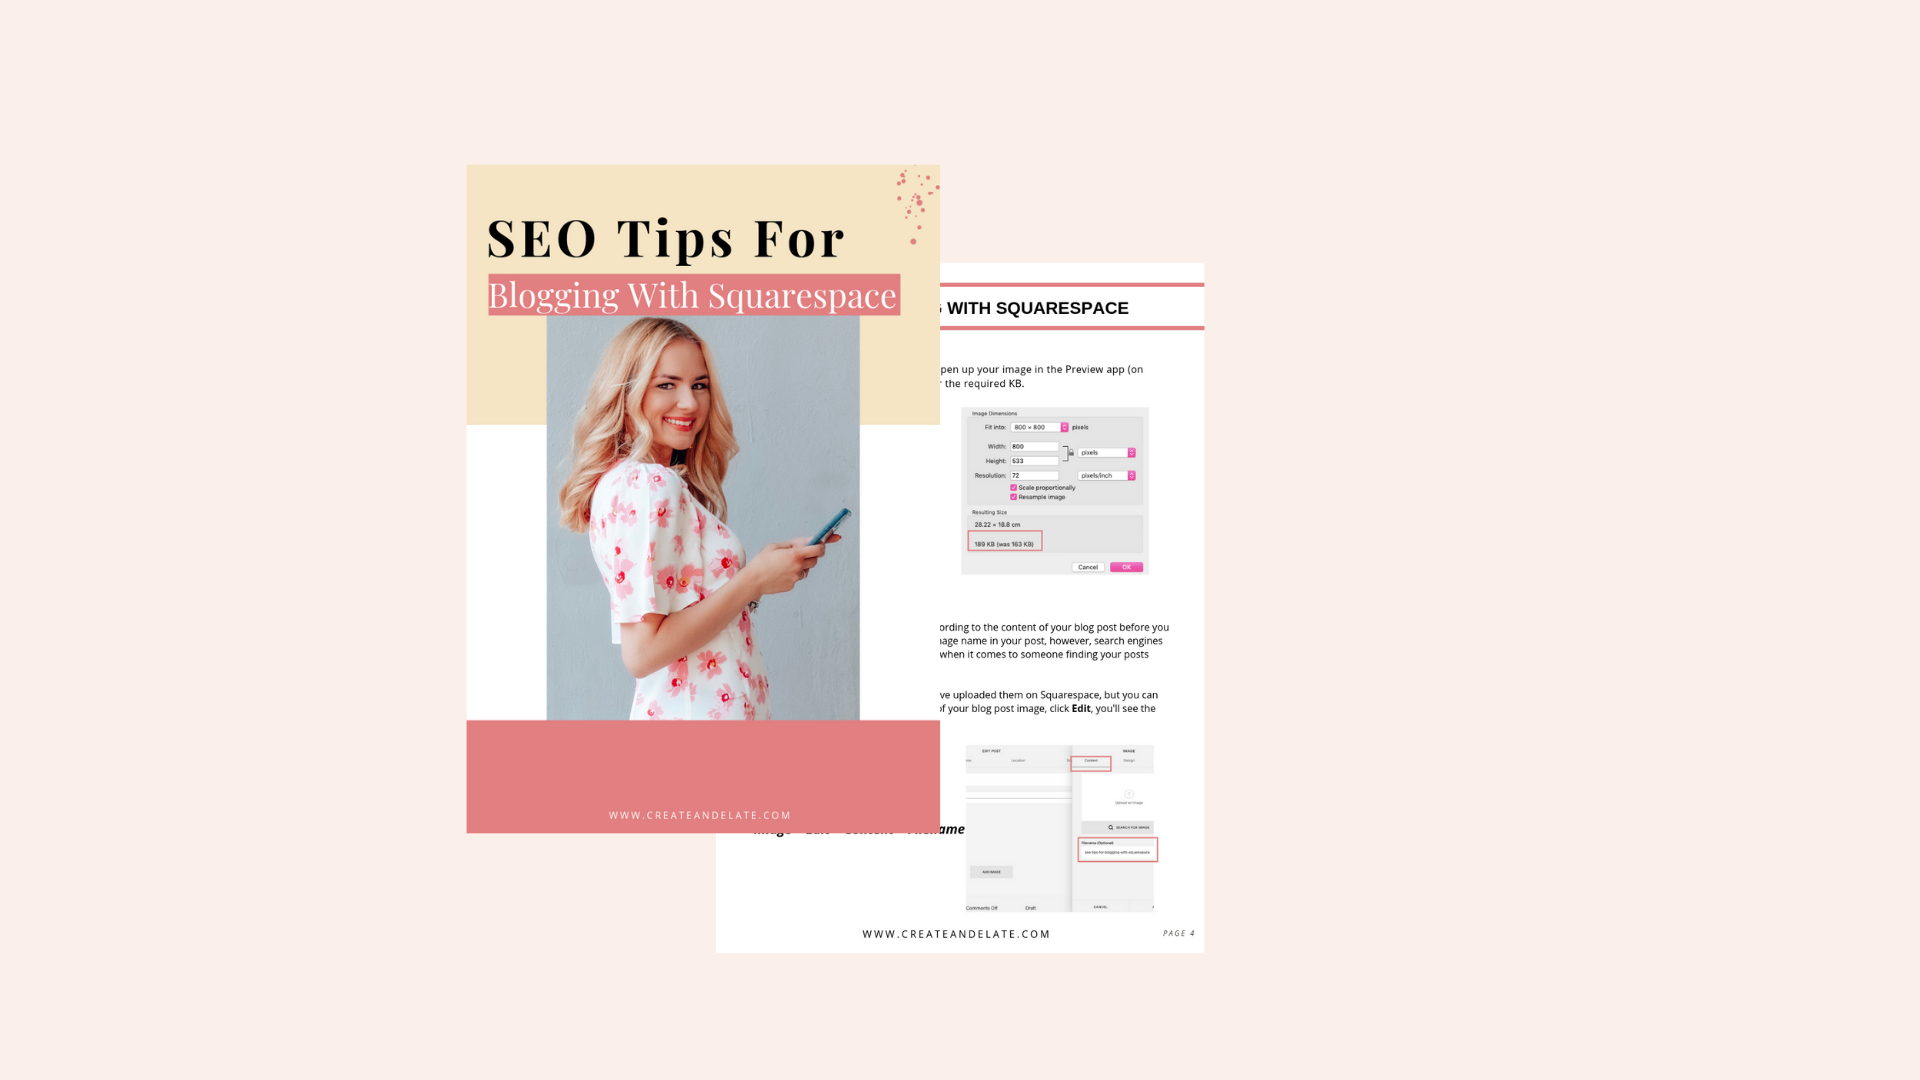 SEO-TIPS-FOR-BLOGGING-WITH-SQUARESPACE.png